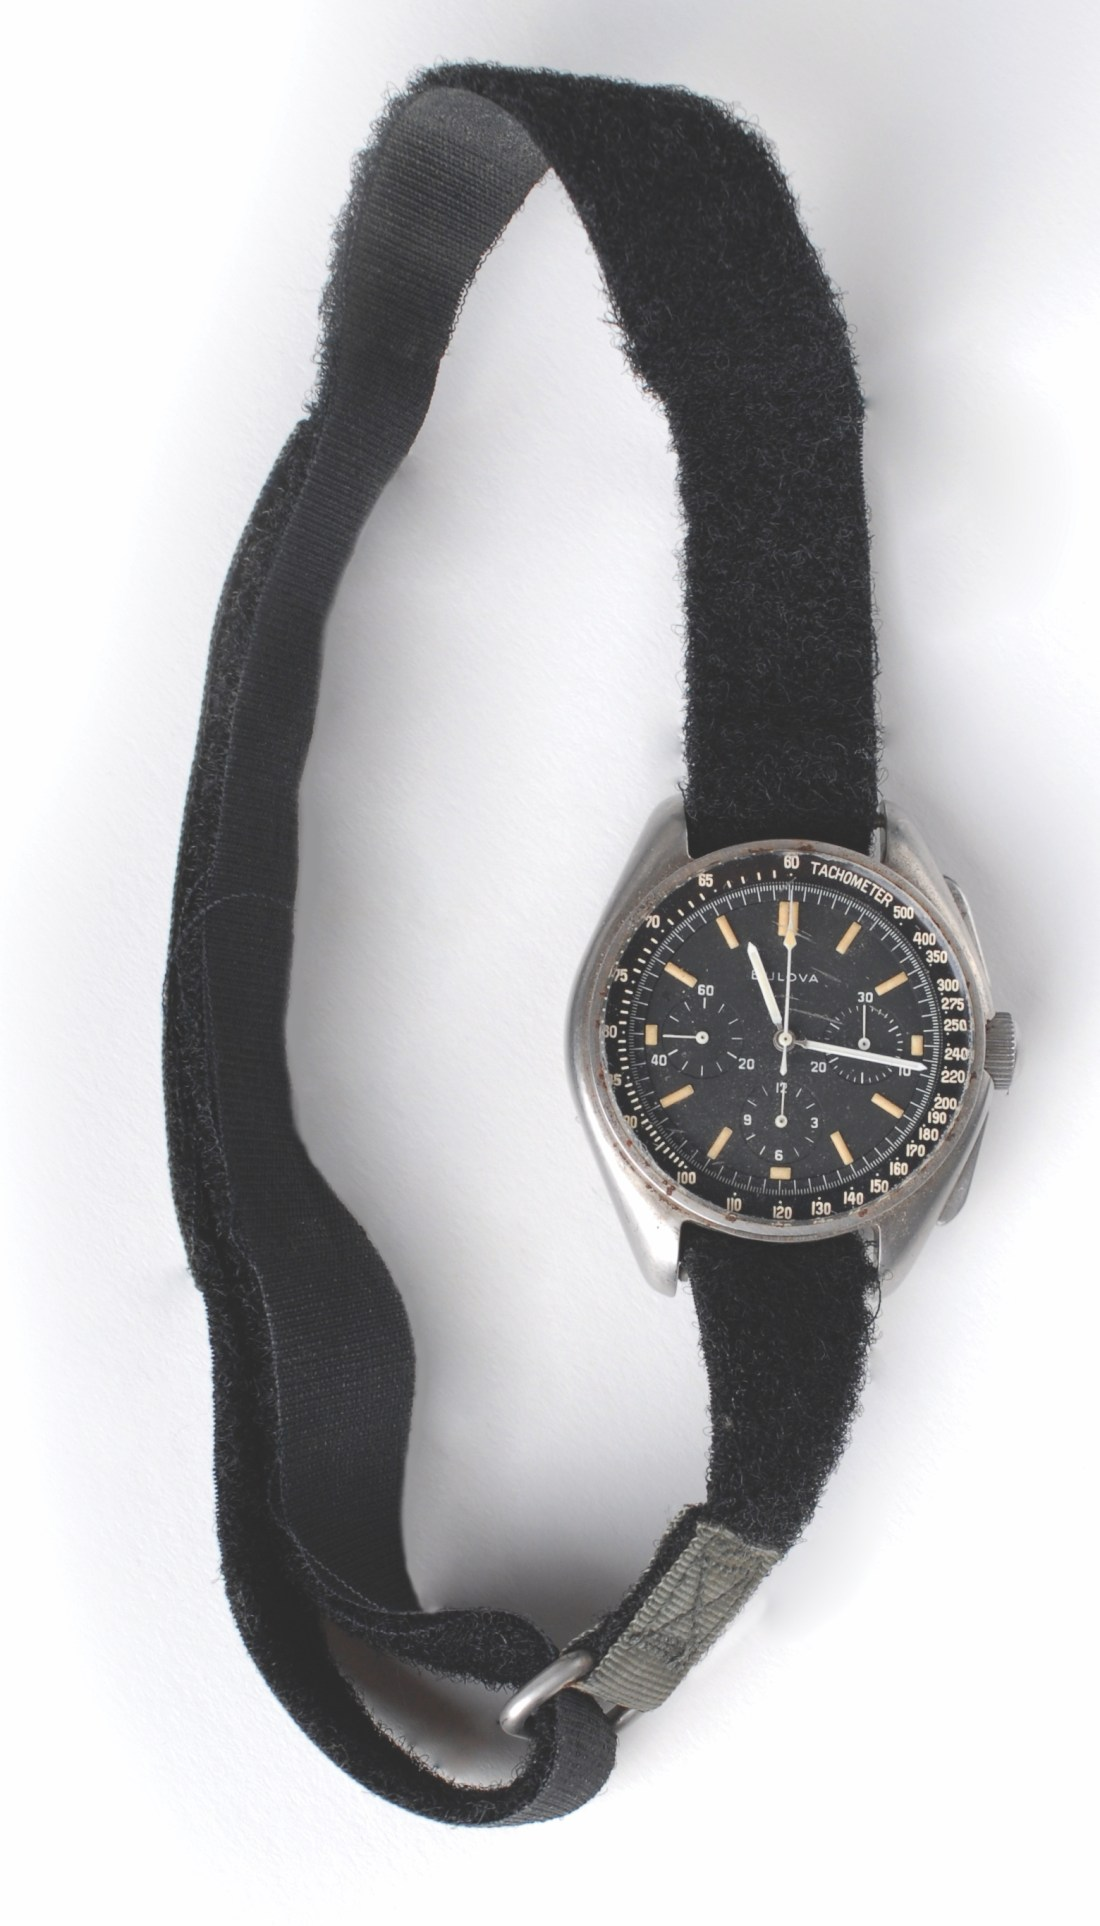 The Bulova chronograph that astronaut David Scott wore on the surface of the moon during the Apollo 15 mission, shown in full, with the fuzzy side of the velcro strap visible.